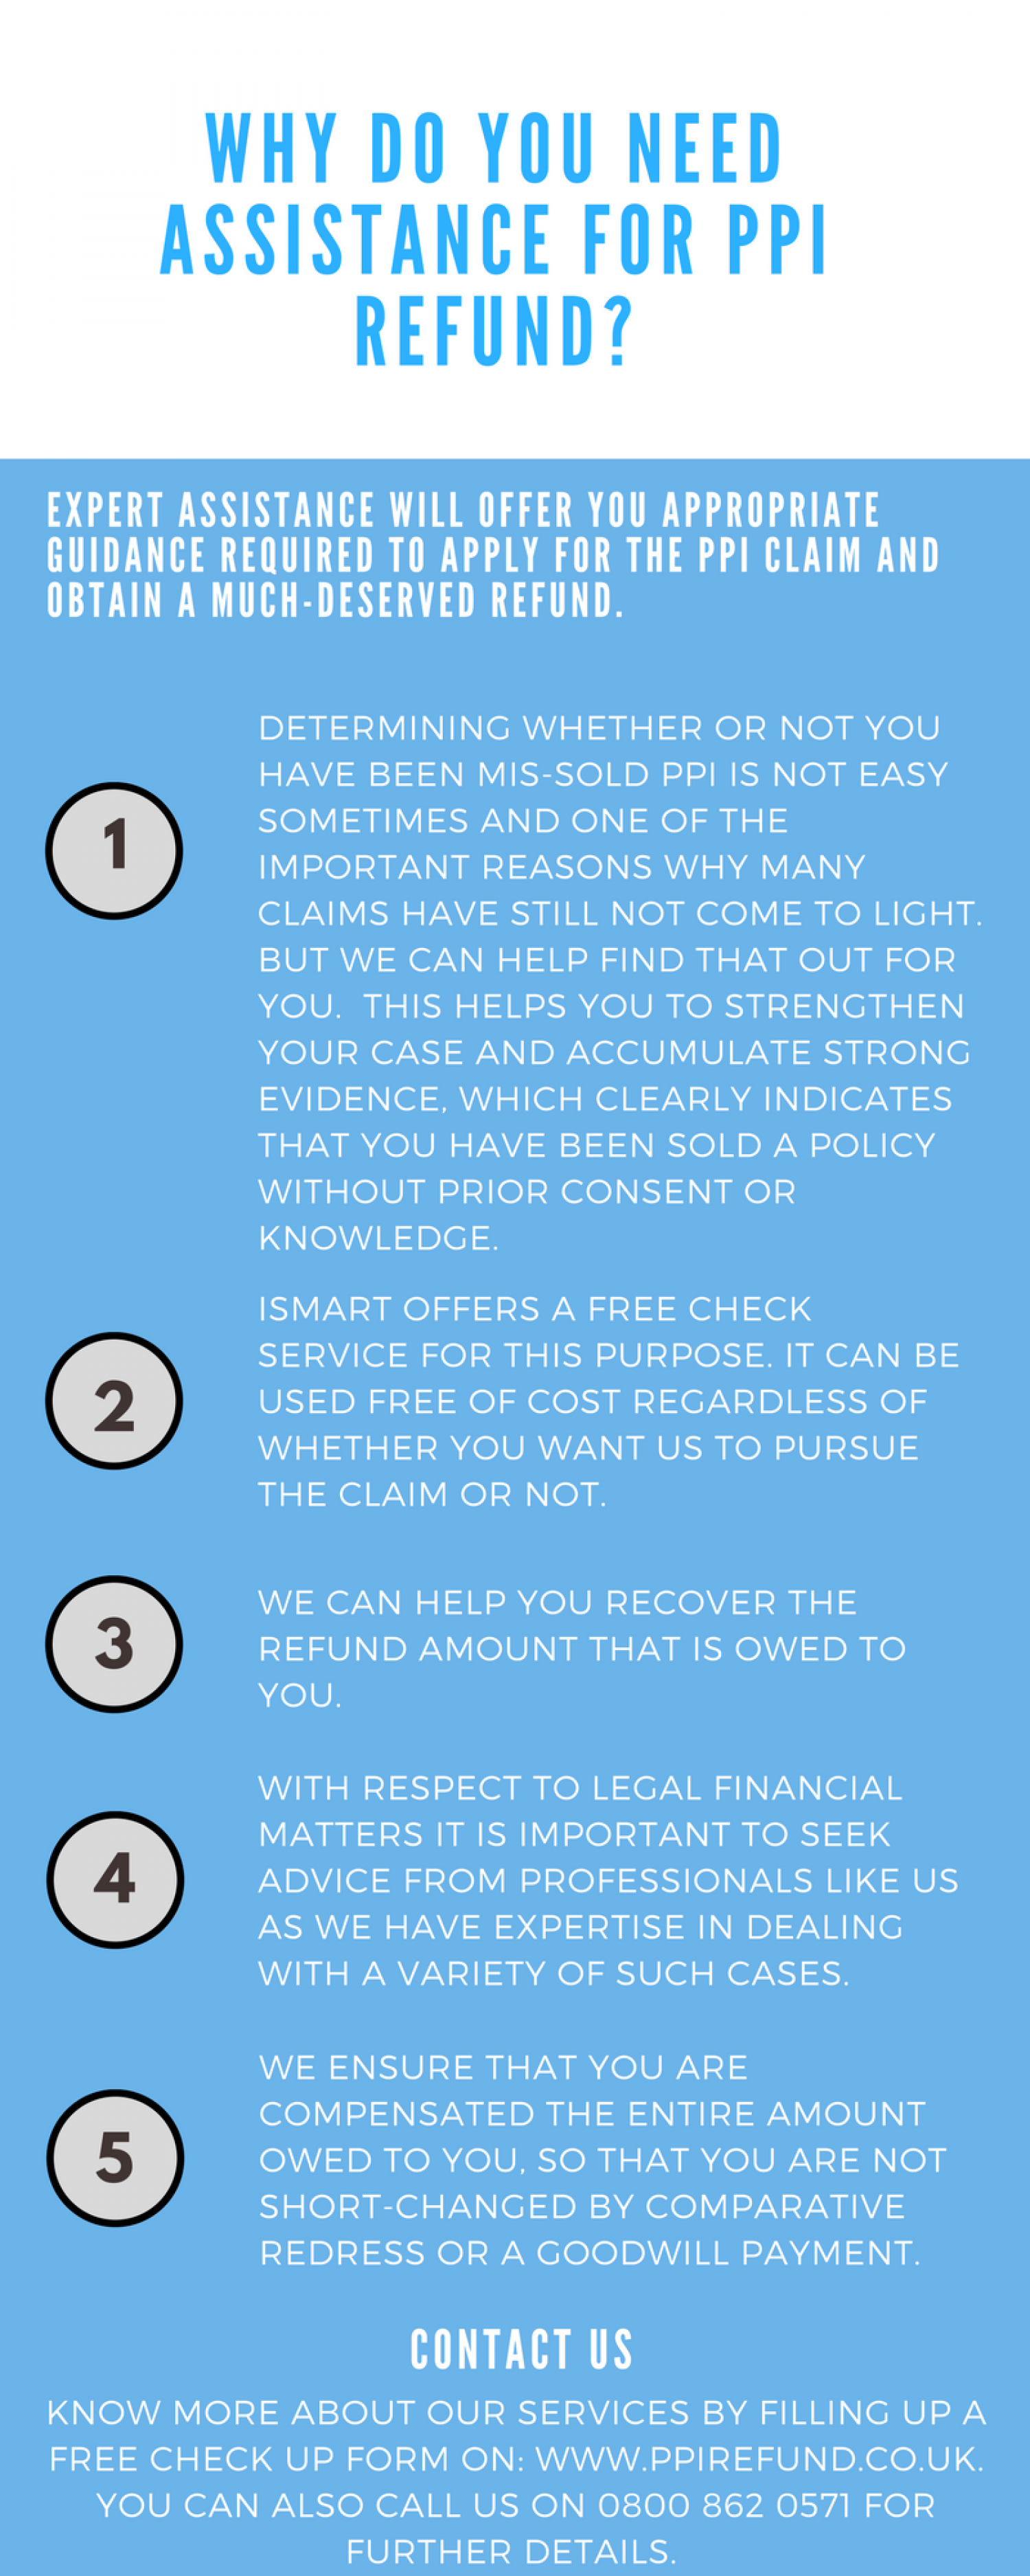 Why do you need assistance for PPI Refund? Infographic